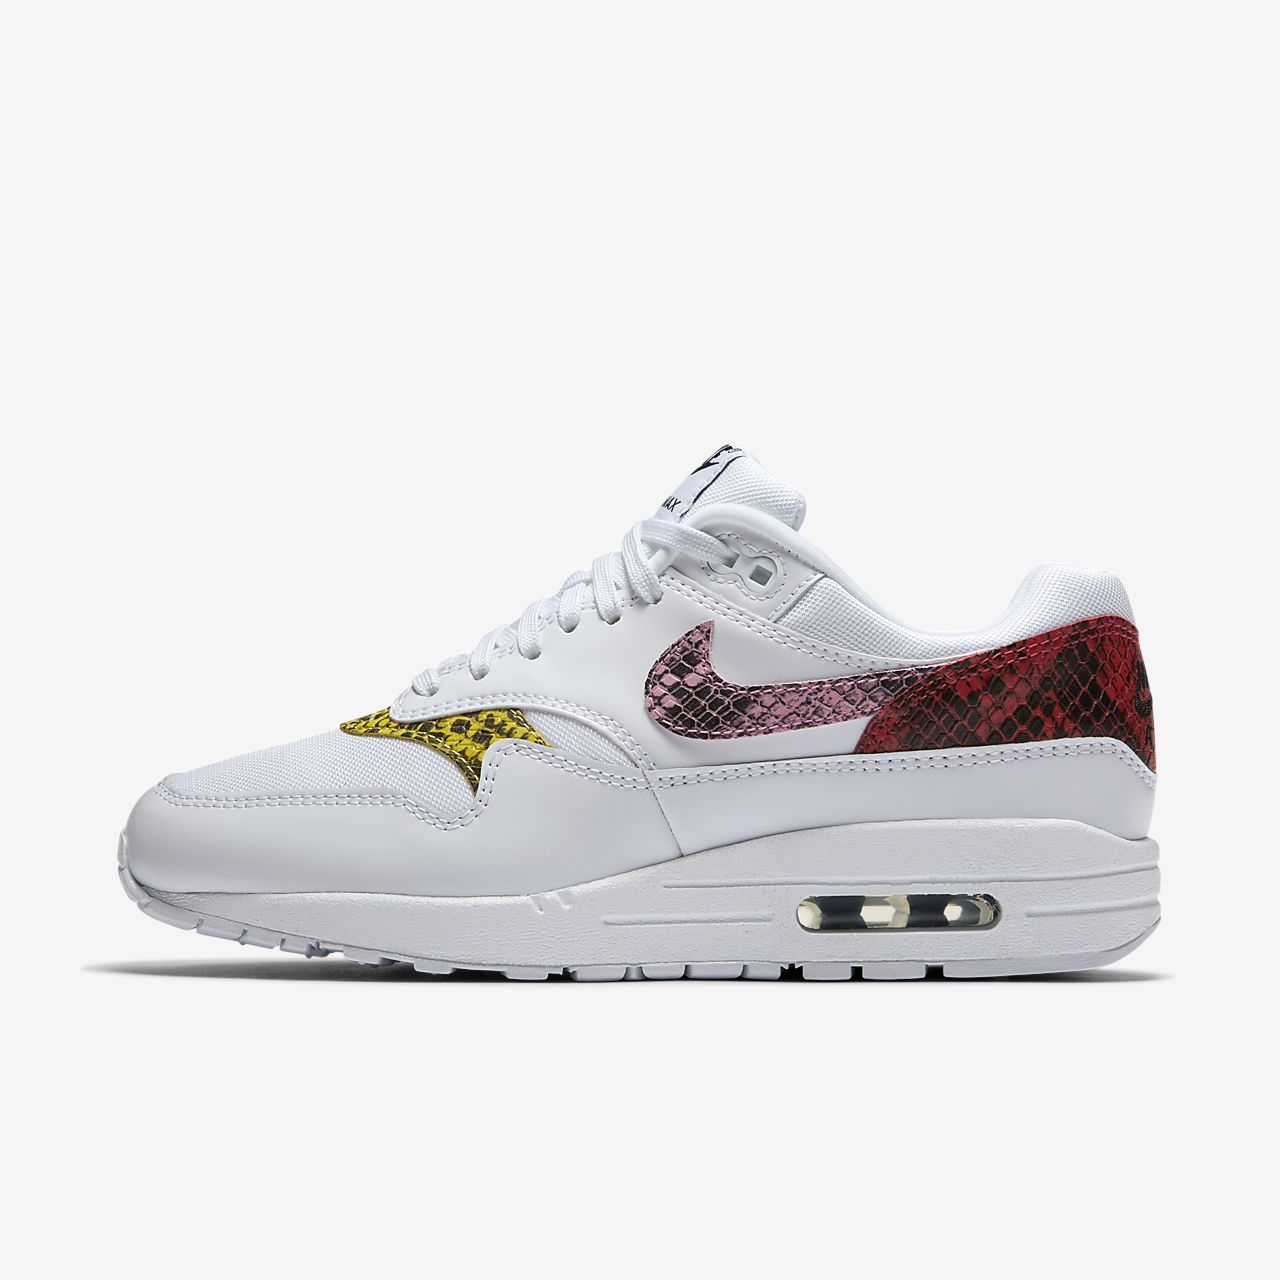 competitive price 93f8d b193c ... Chaussure Nike Air Max 1 Premium Animal pour Femme